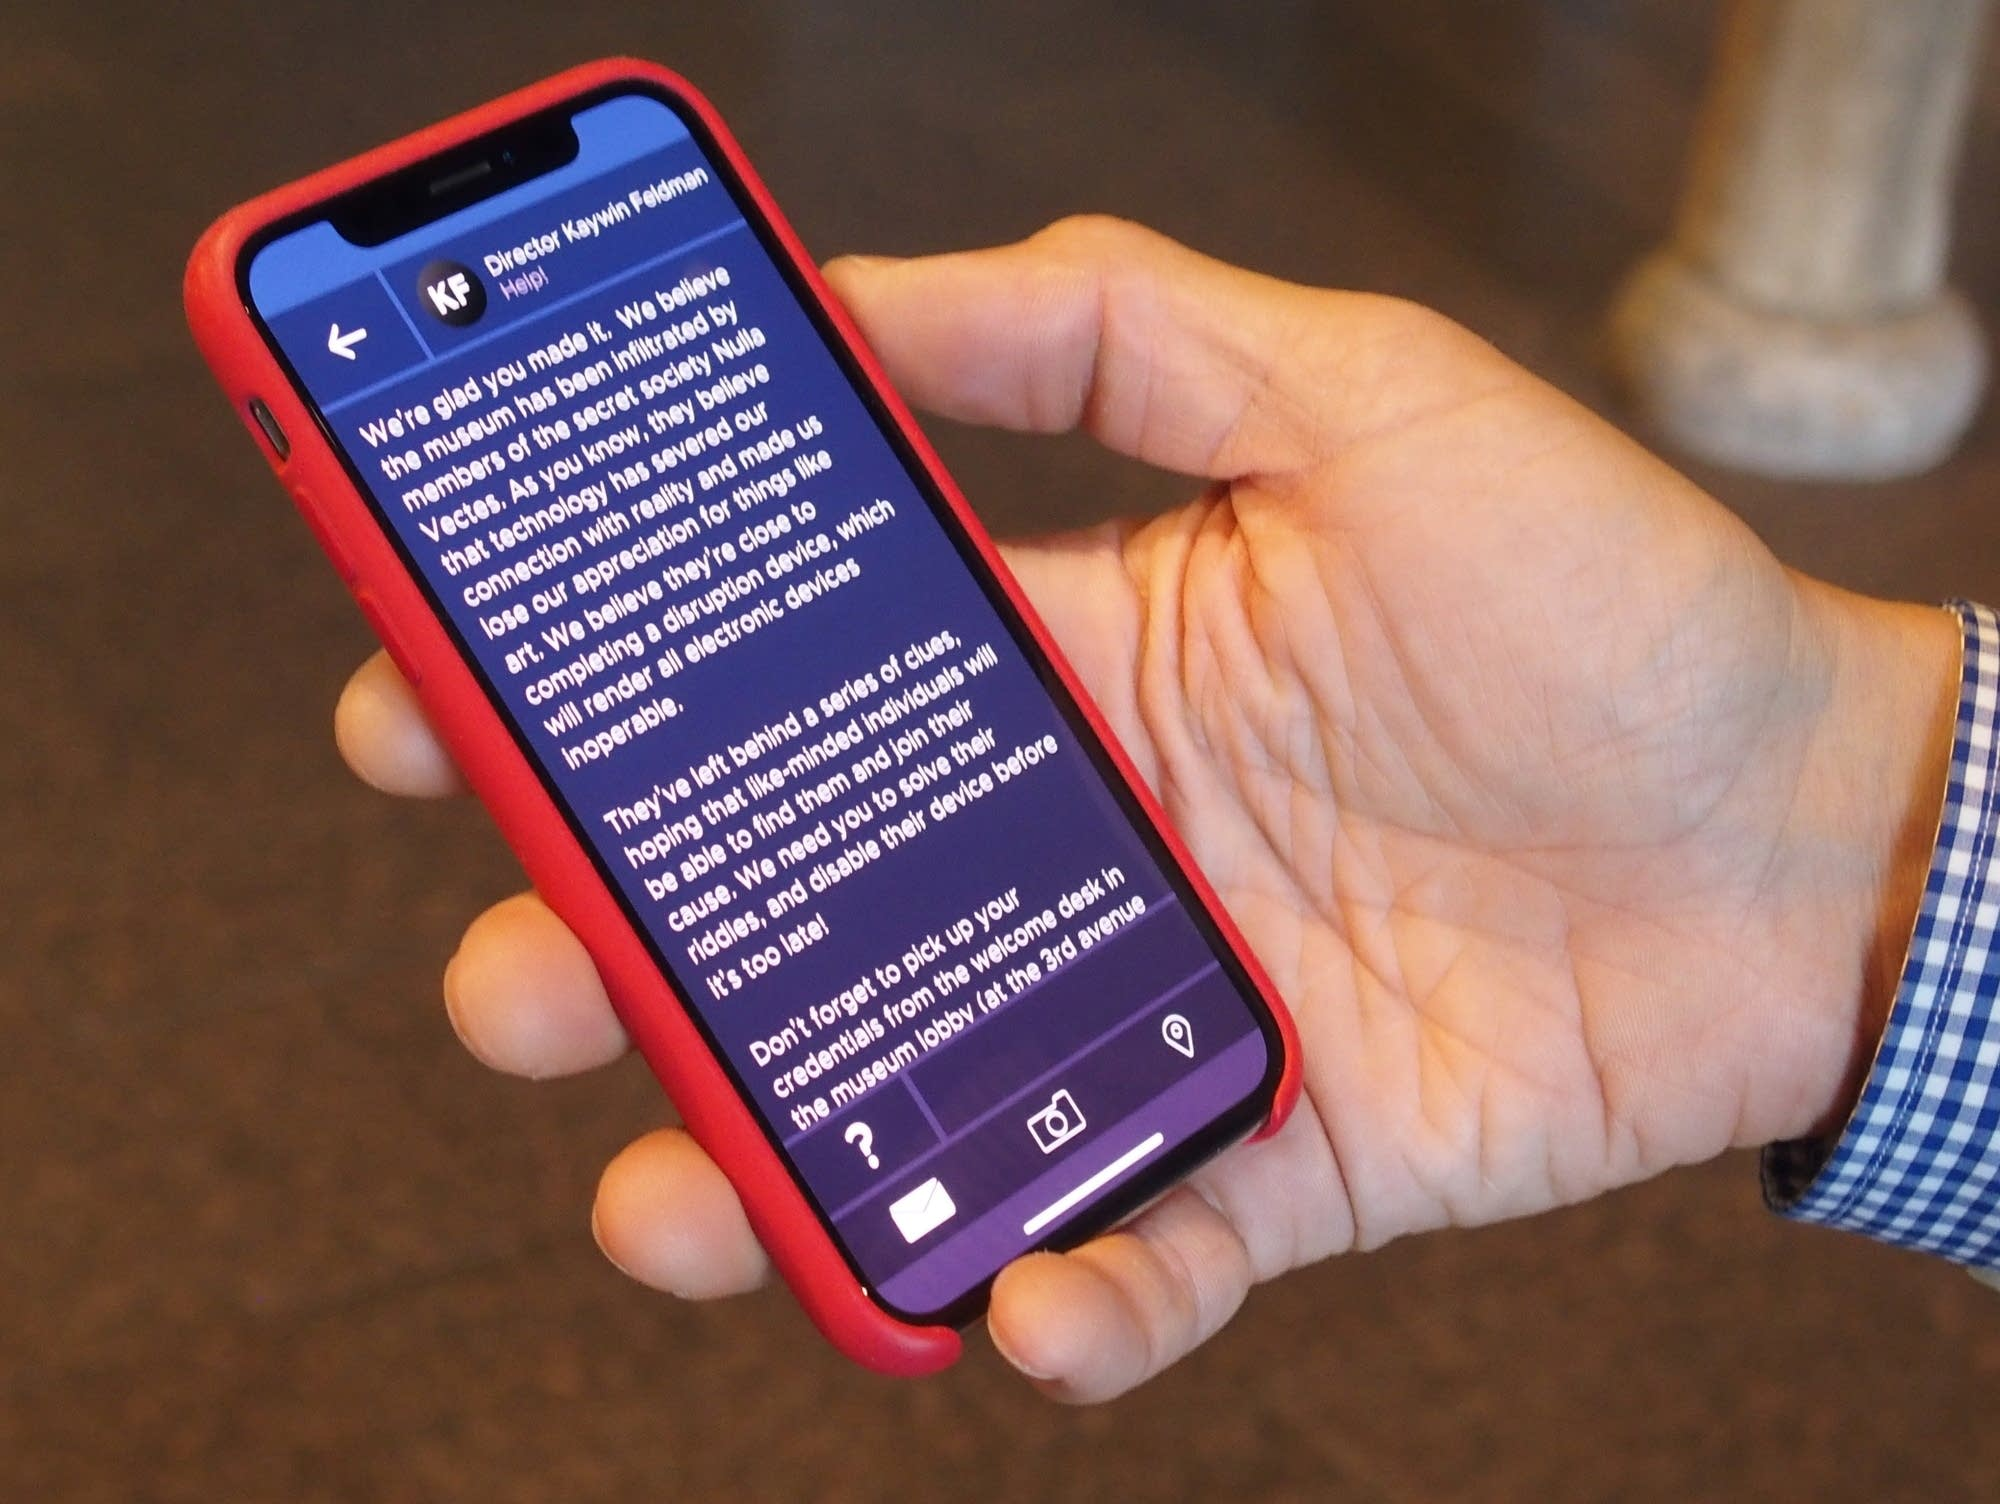 Colin McFadden holds a smartphone with the first message in the game.